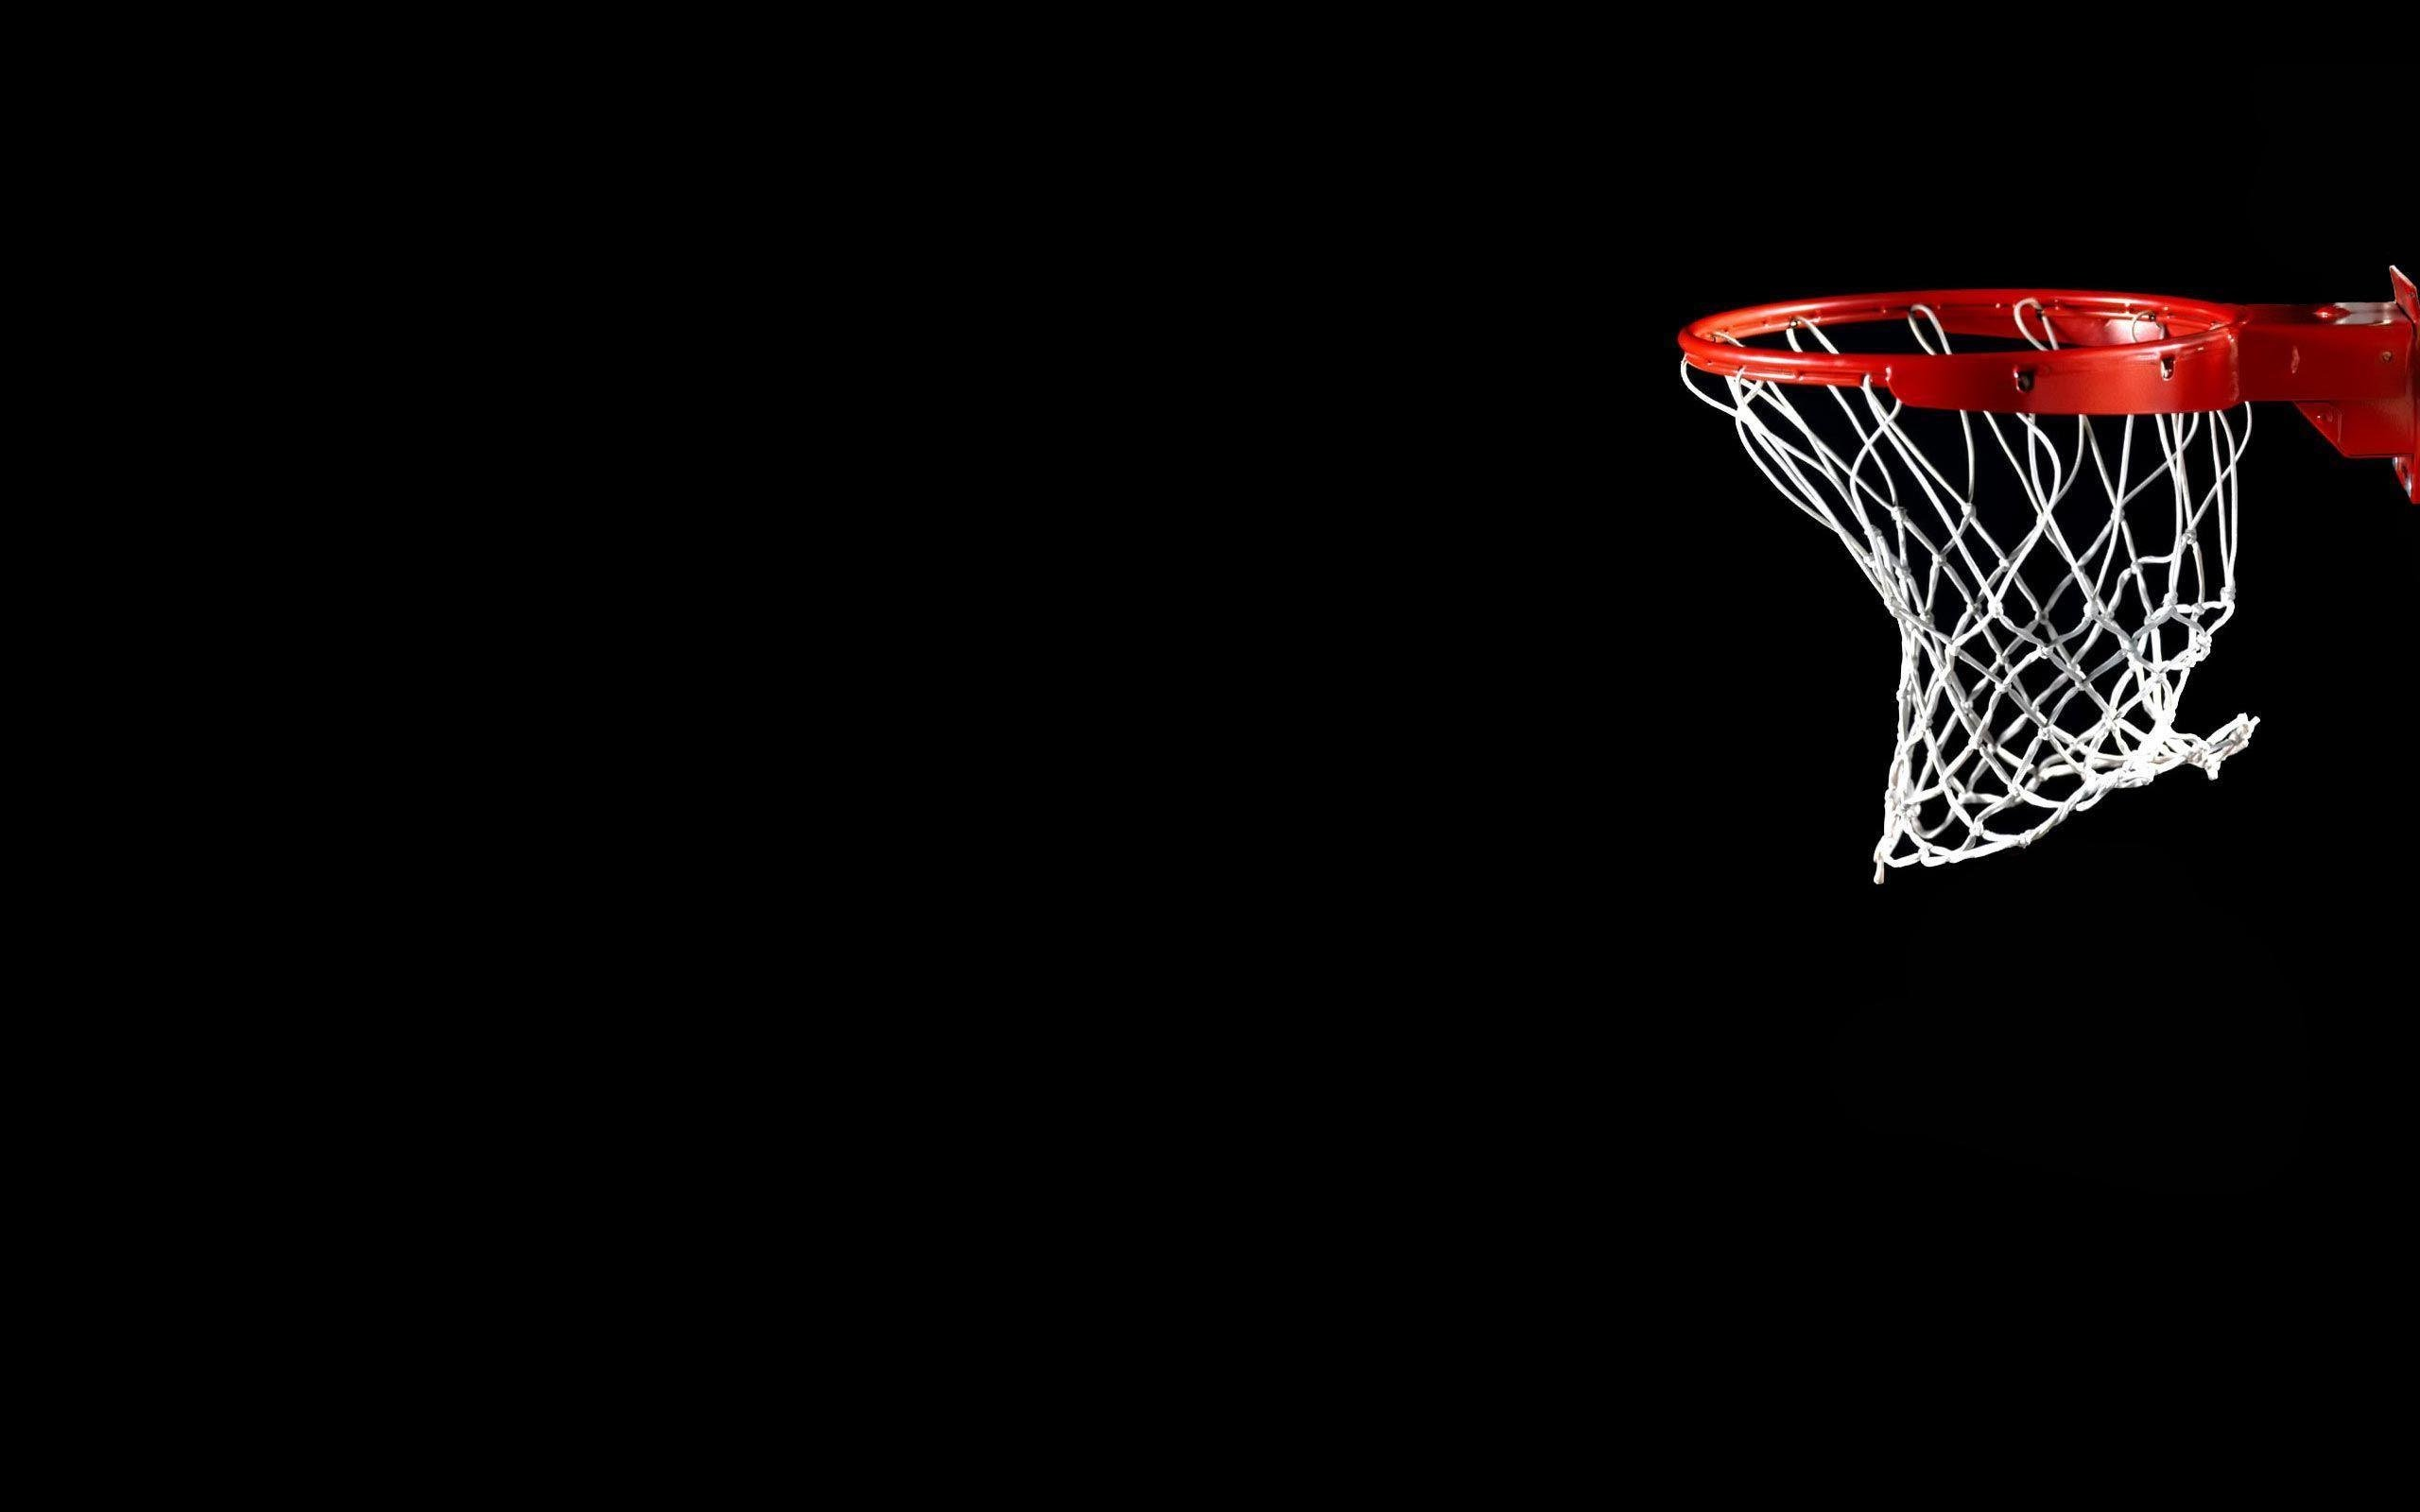 Hd Basketball Wallpapers Top Free Hd Basketball Backgrounds